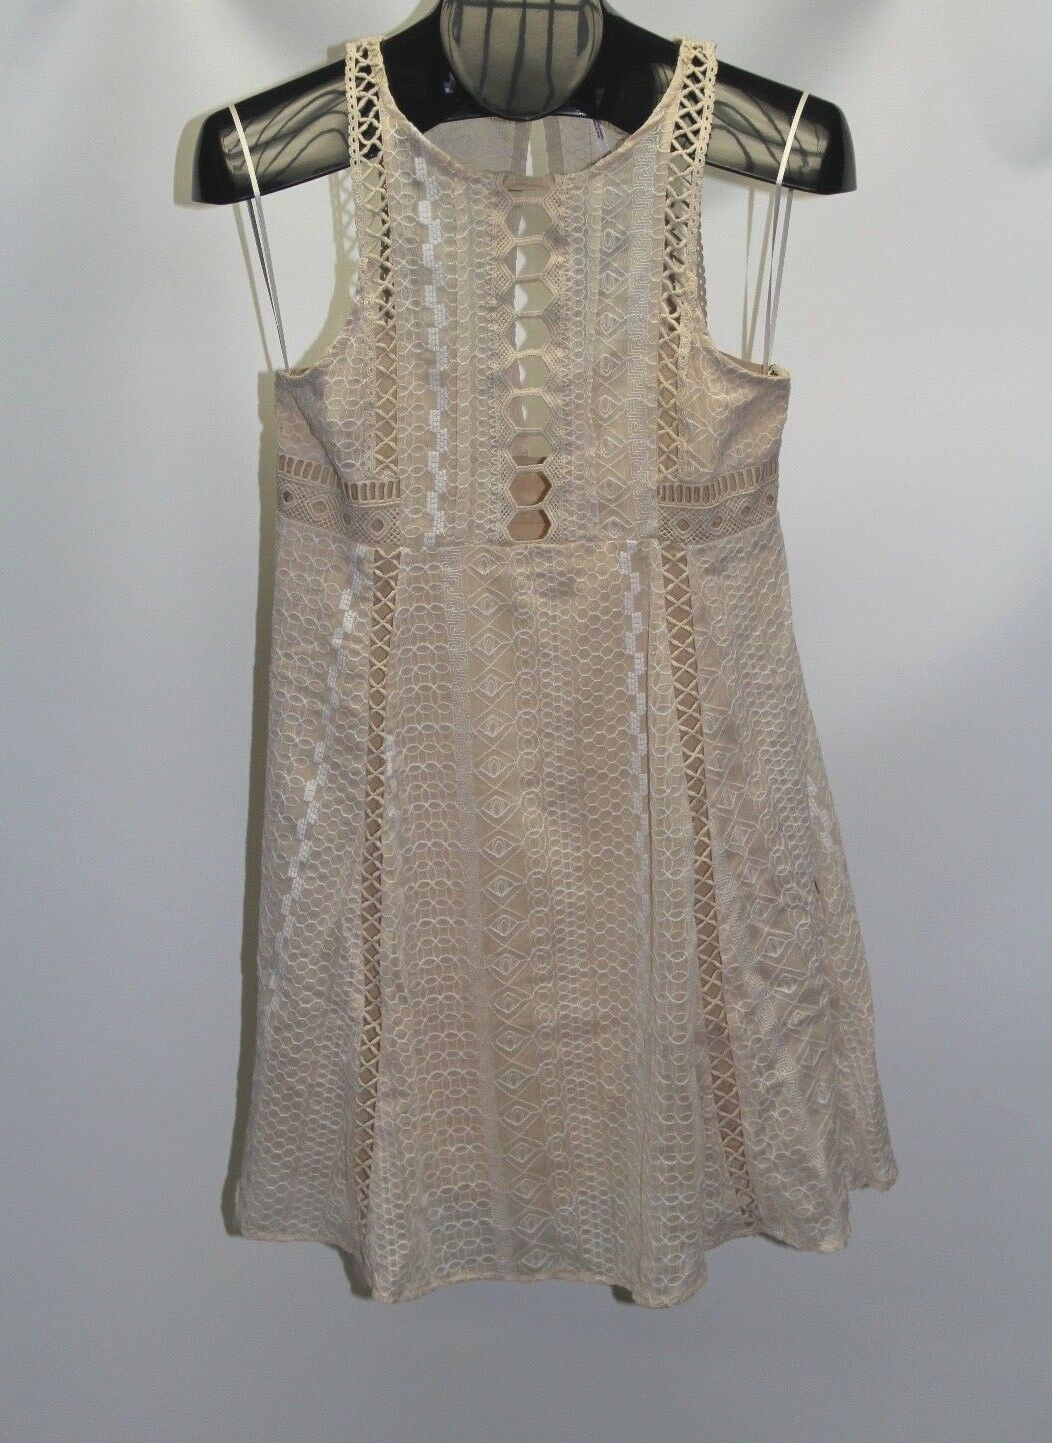 New Free People Ivory Women's Size 6 Wherever You Go Crocheted Mini Dress